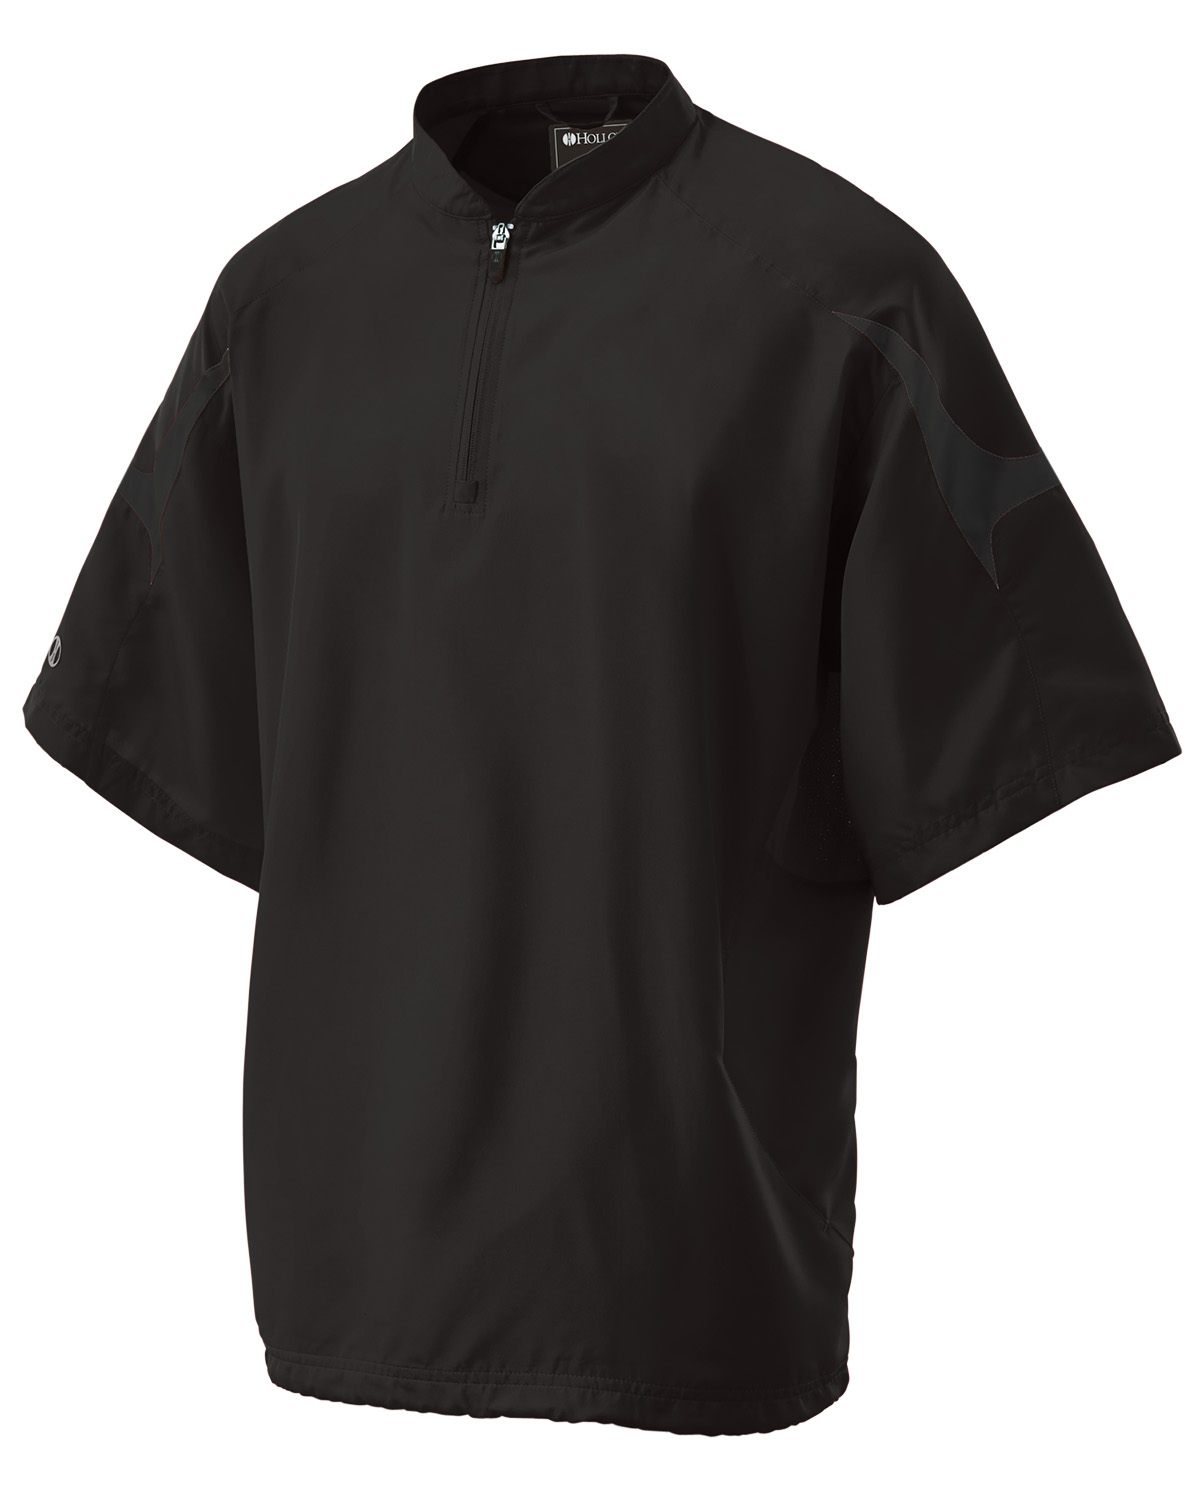 Holloway 222485 - Adult Polyester Short Sleeve Equalizer ...